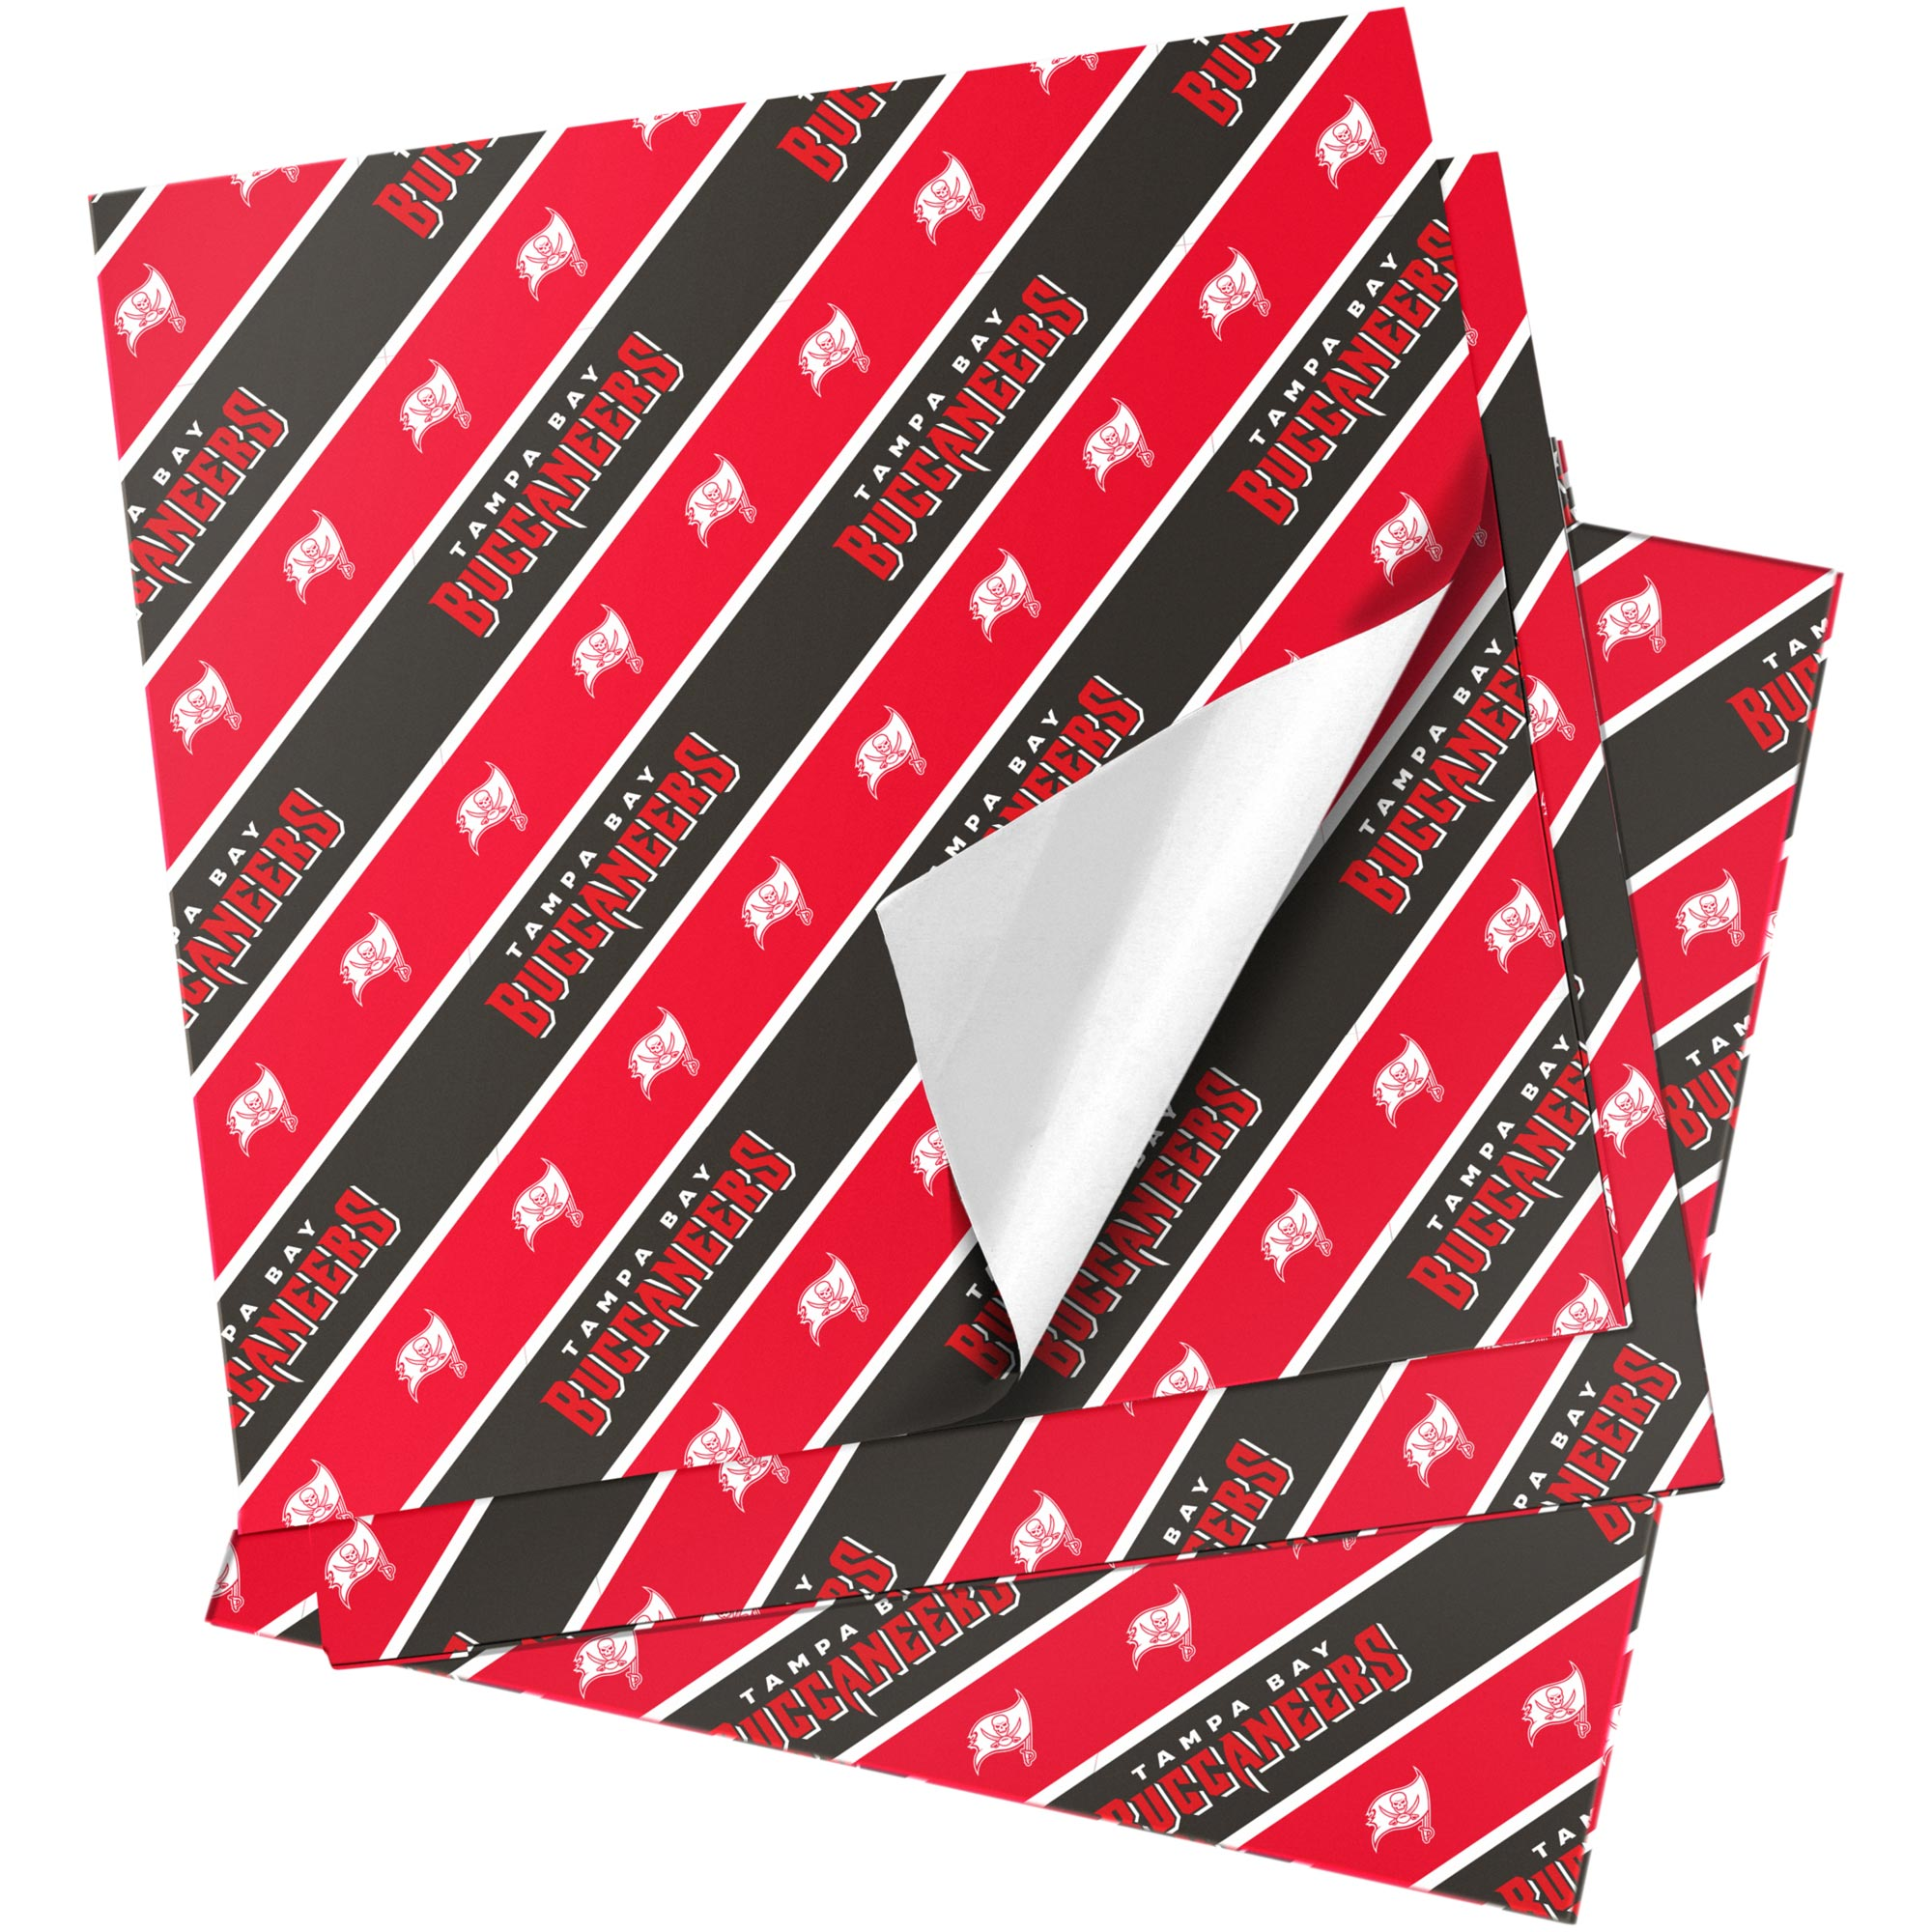 "Tampa Bay Buccaneers 20"" x 30"" Wrapping Paper"